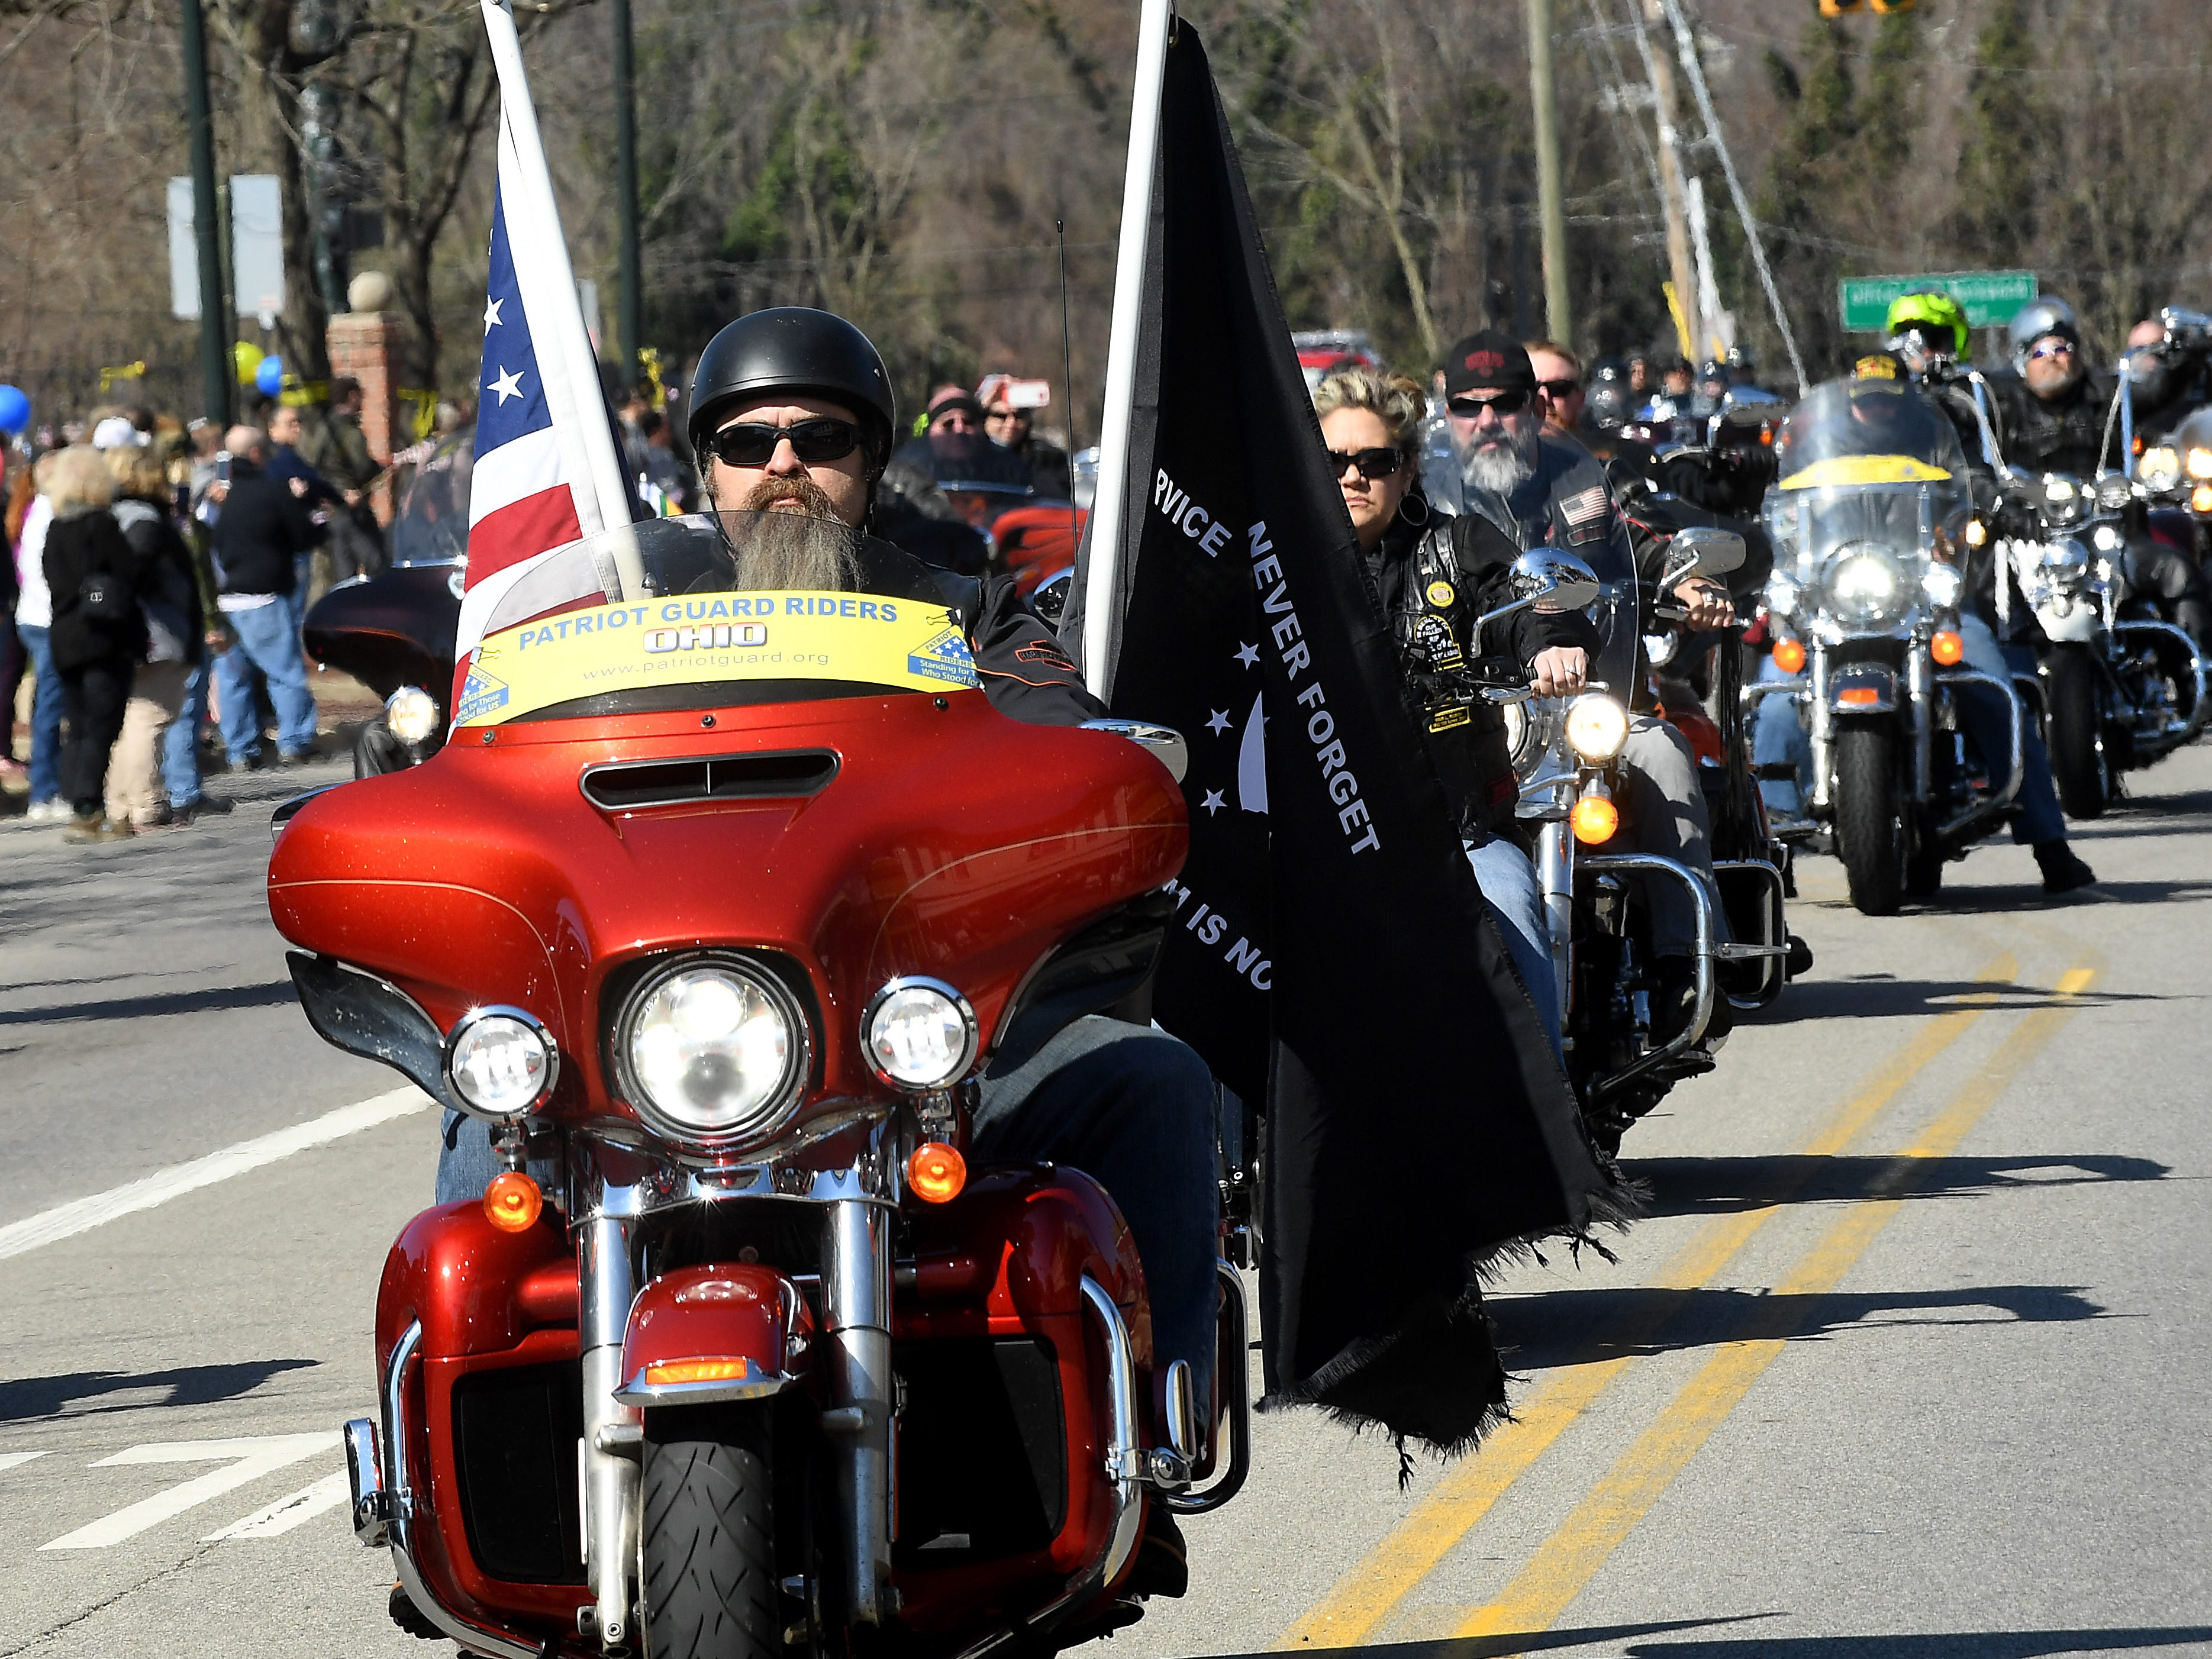 Patriot Guard Riders pass crowds lining Main Street in Lancaster as they escort the hearse carrying U.S. Army Sgt. Joseph Collette. More than 300 bikers provided an escort for the family.